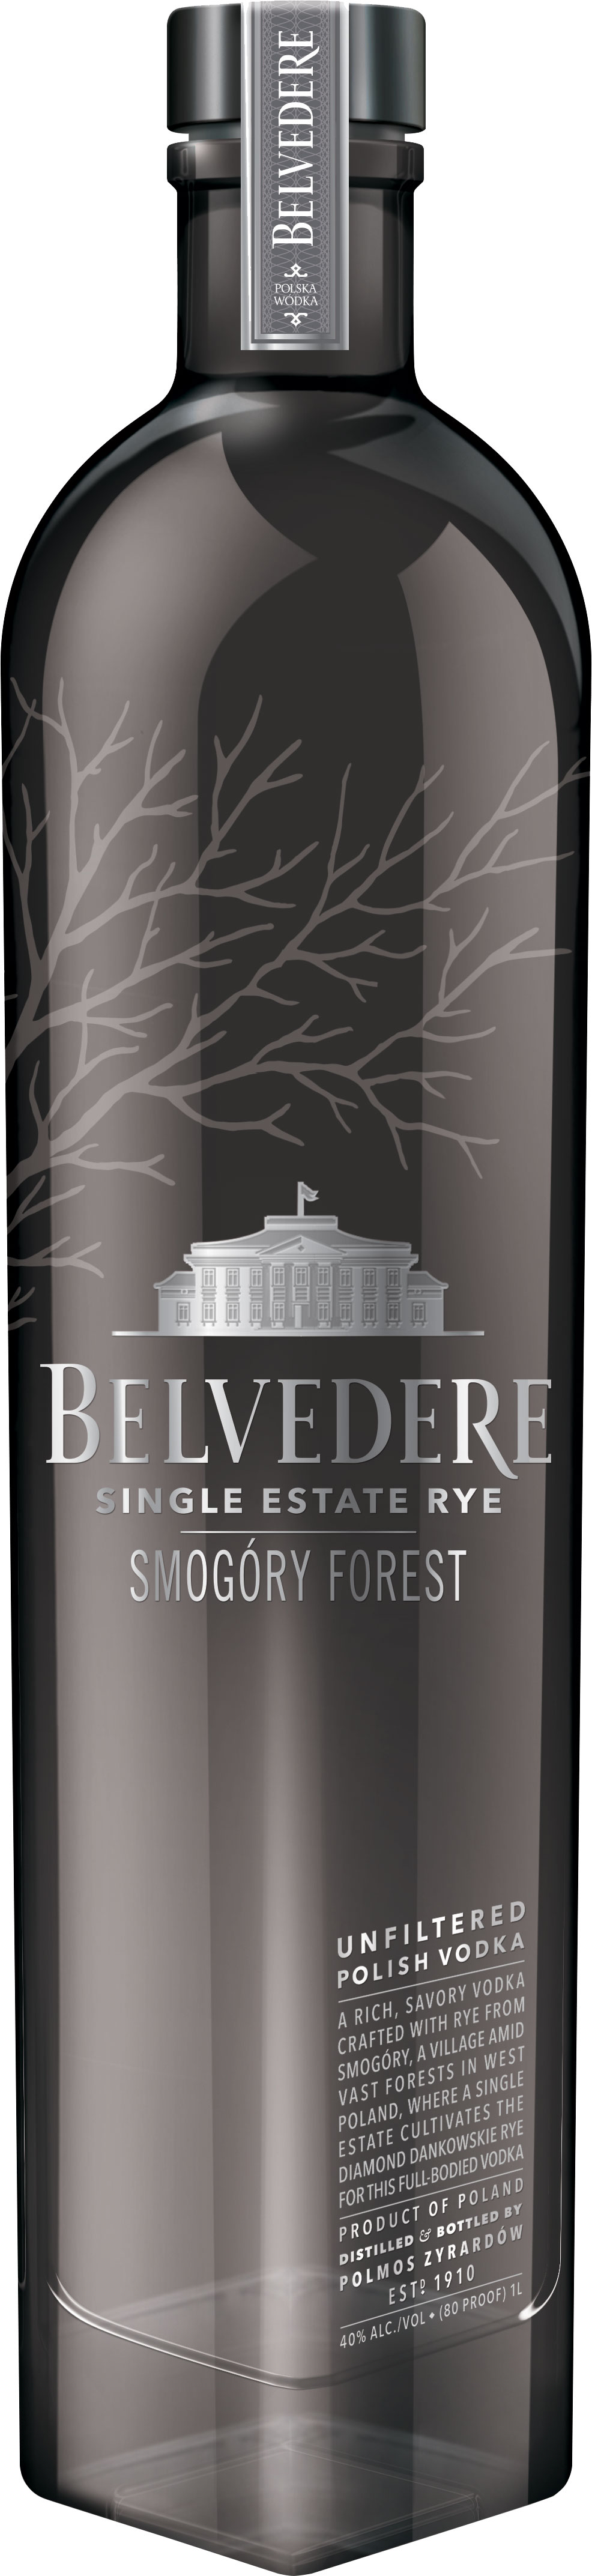 Belvedere Single Estate - Smogory Forest Rye Vodka 70cl Bottle